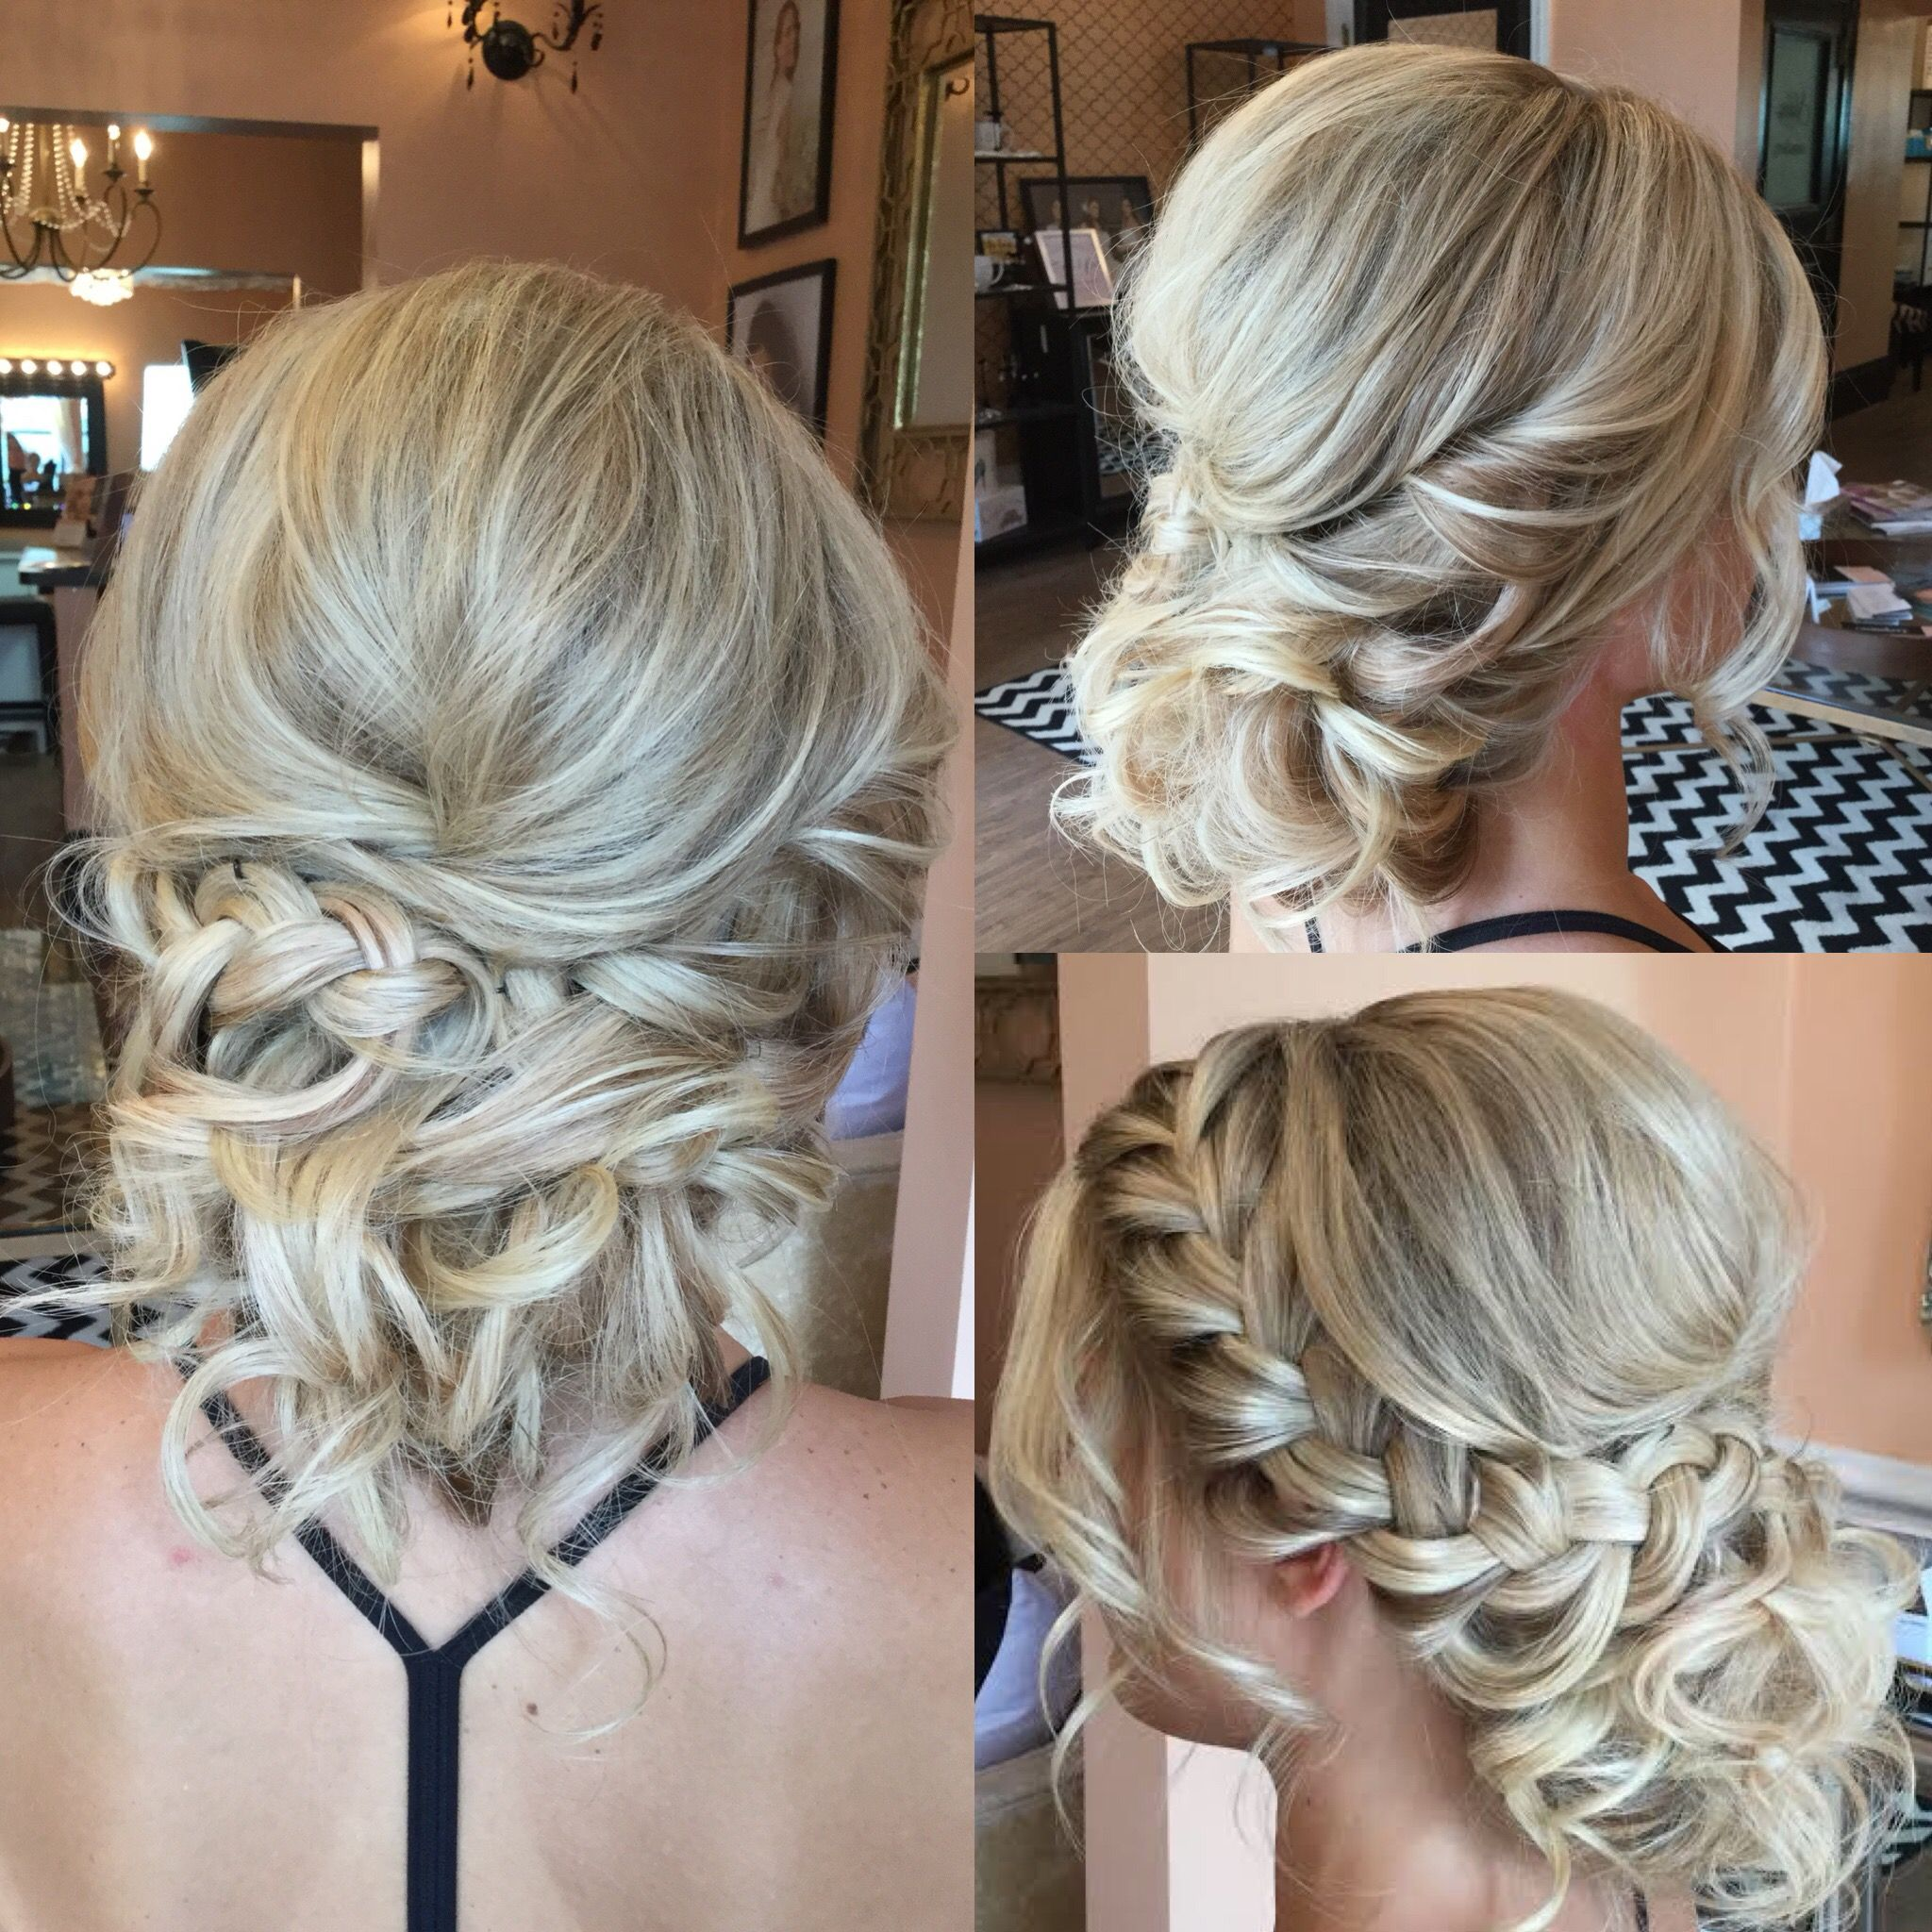 Textured Up Do For Blondes With Curls And Side Braid Bridal Formal Hairstyle Braided Prom Hair Braids With Curls Hair Styles